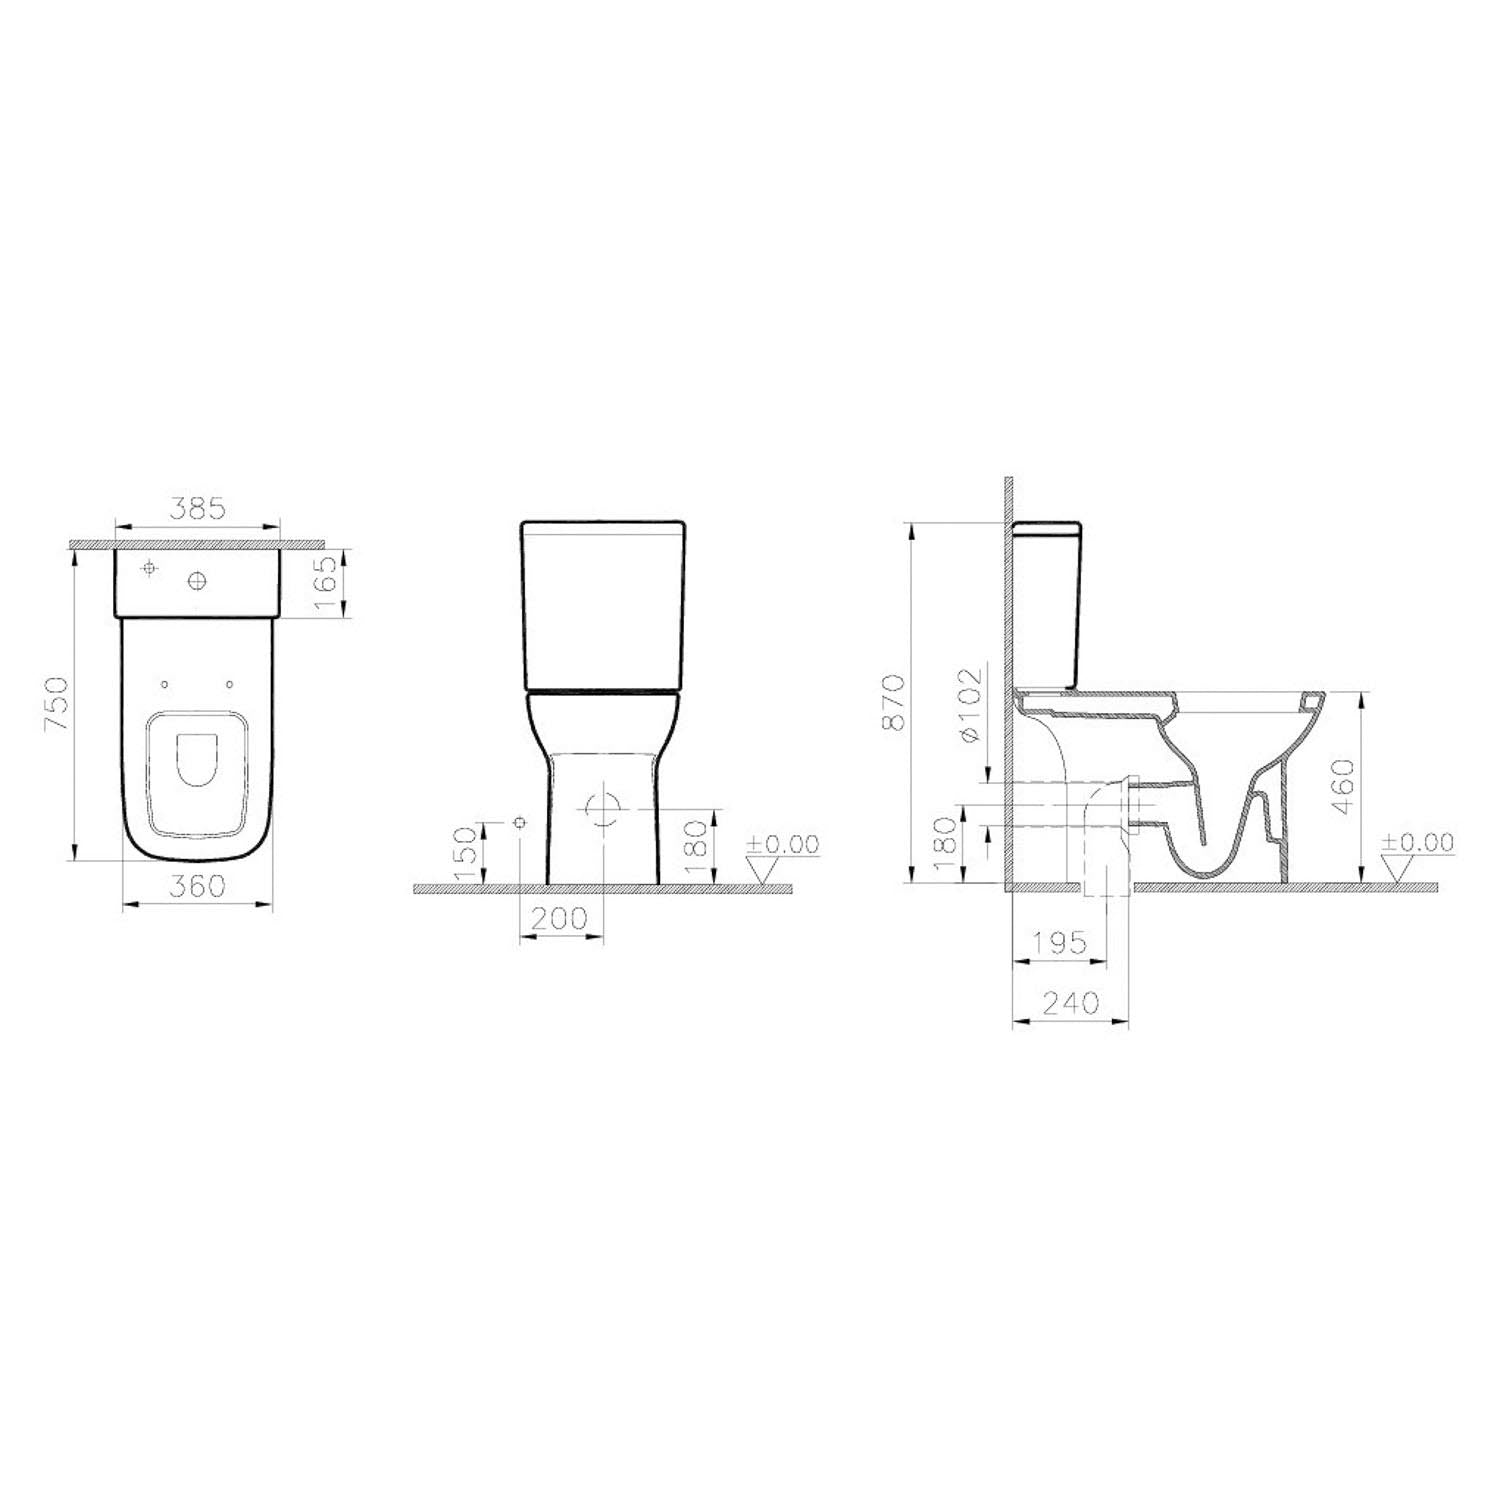 Consilio Comfort Height Close Coupled Toilet with the seat and cistern dimensional drawing